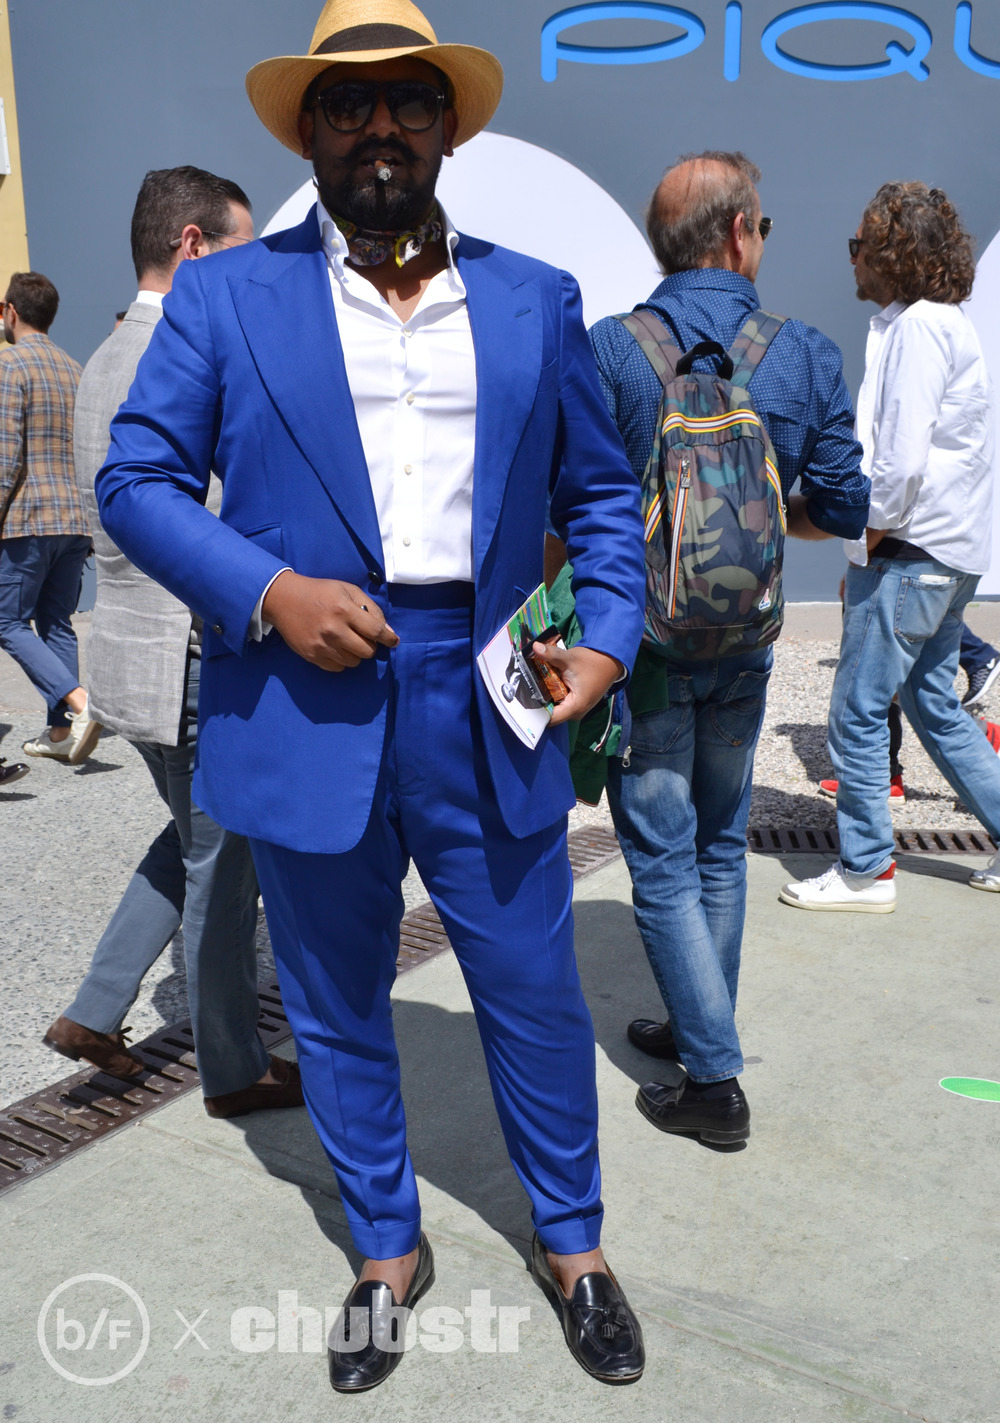 BF032_PittiUomo88_FB_22.jpg